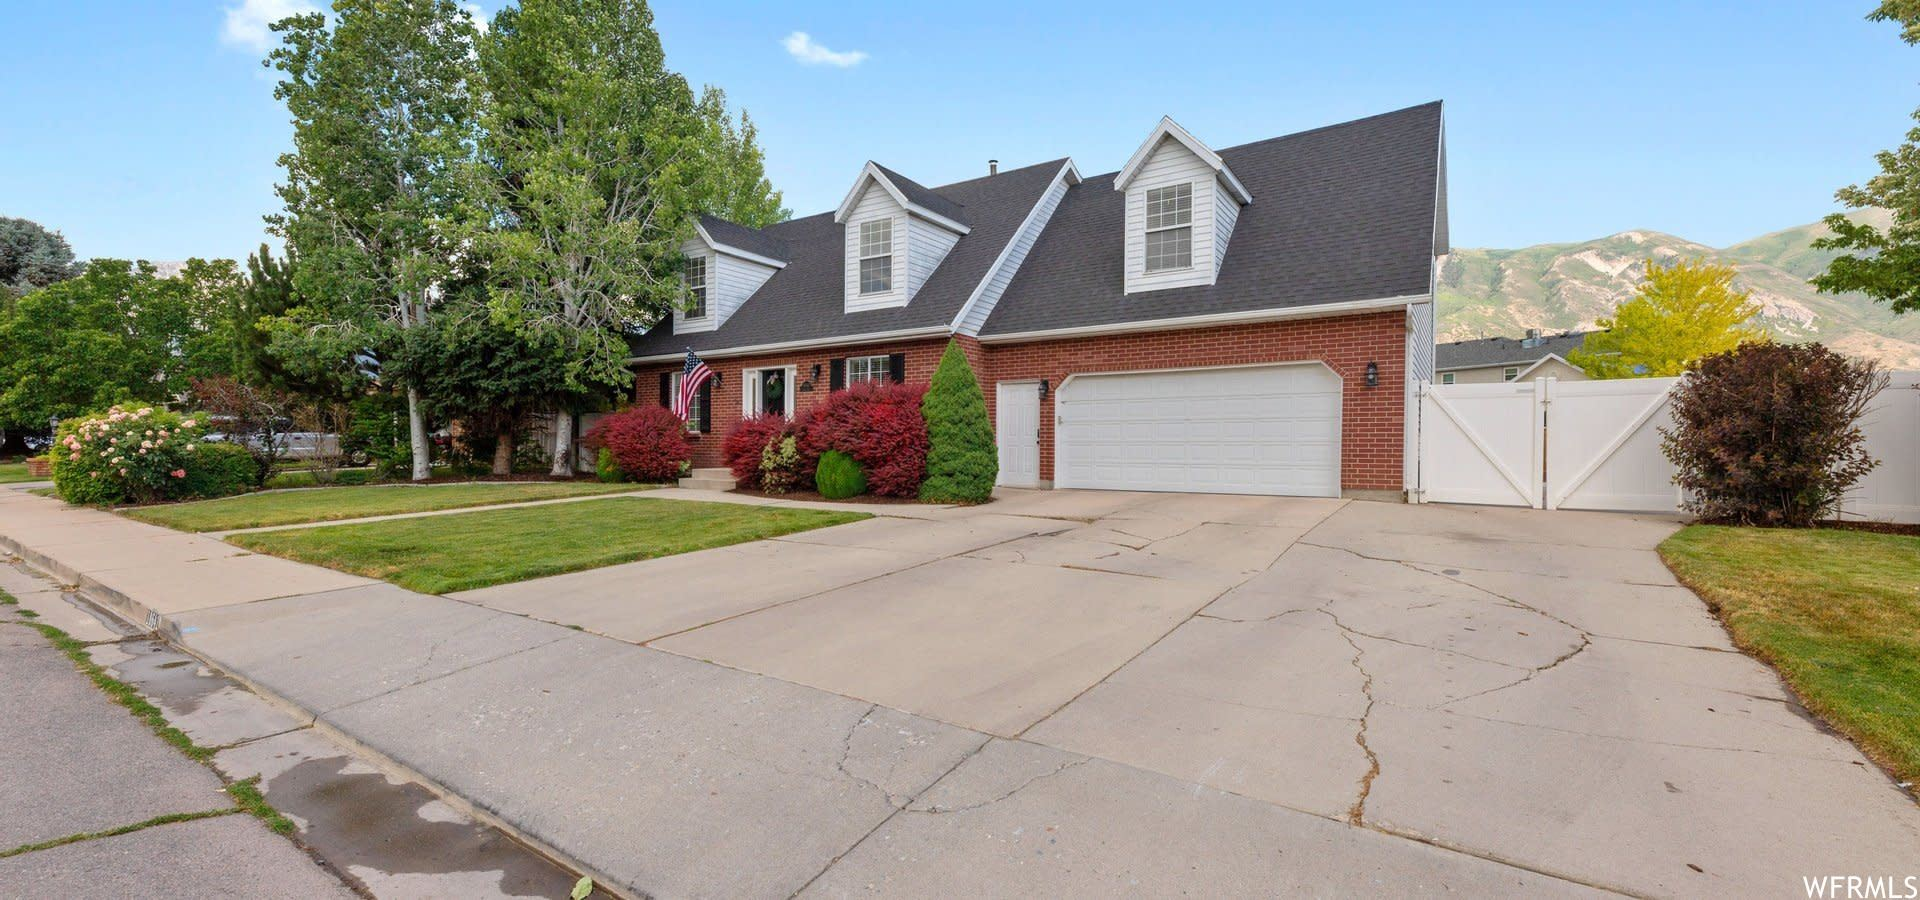 Photo of 10642 W NORTH JERLING N DR, Highland, UT 84003 (MLS # 1753137)